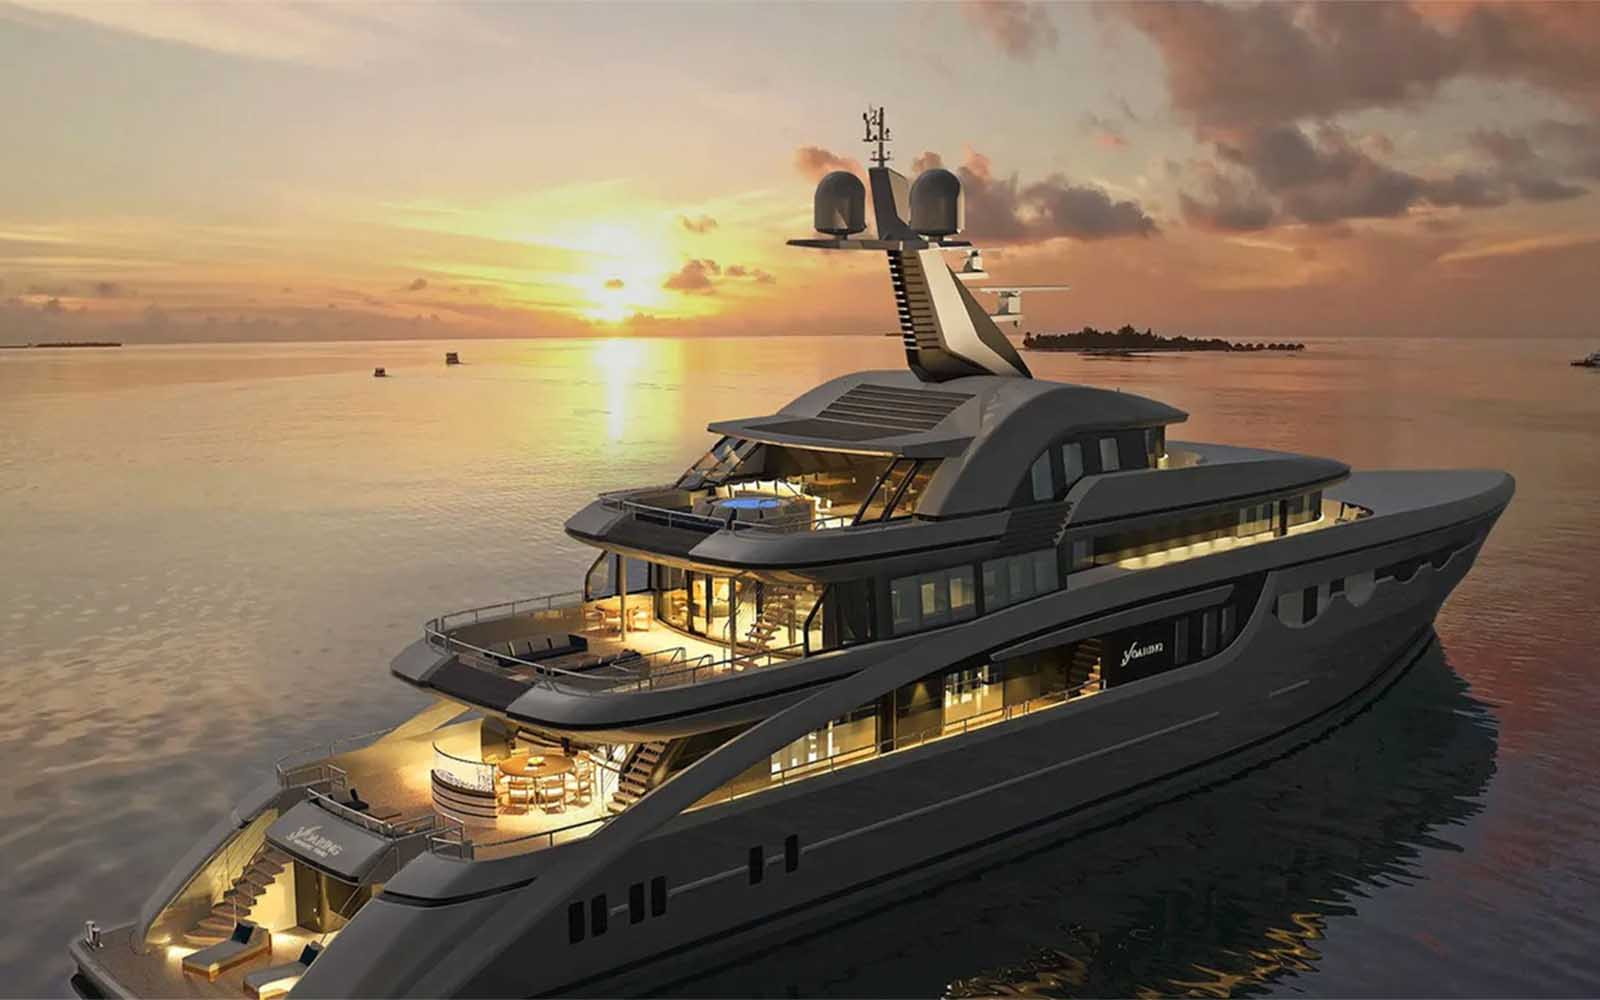 Abeking & Rasmussen Superyacht Soaring - boat shopping